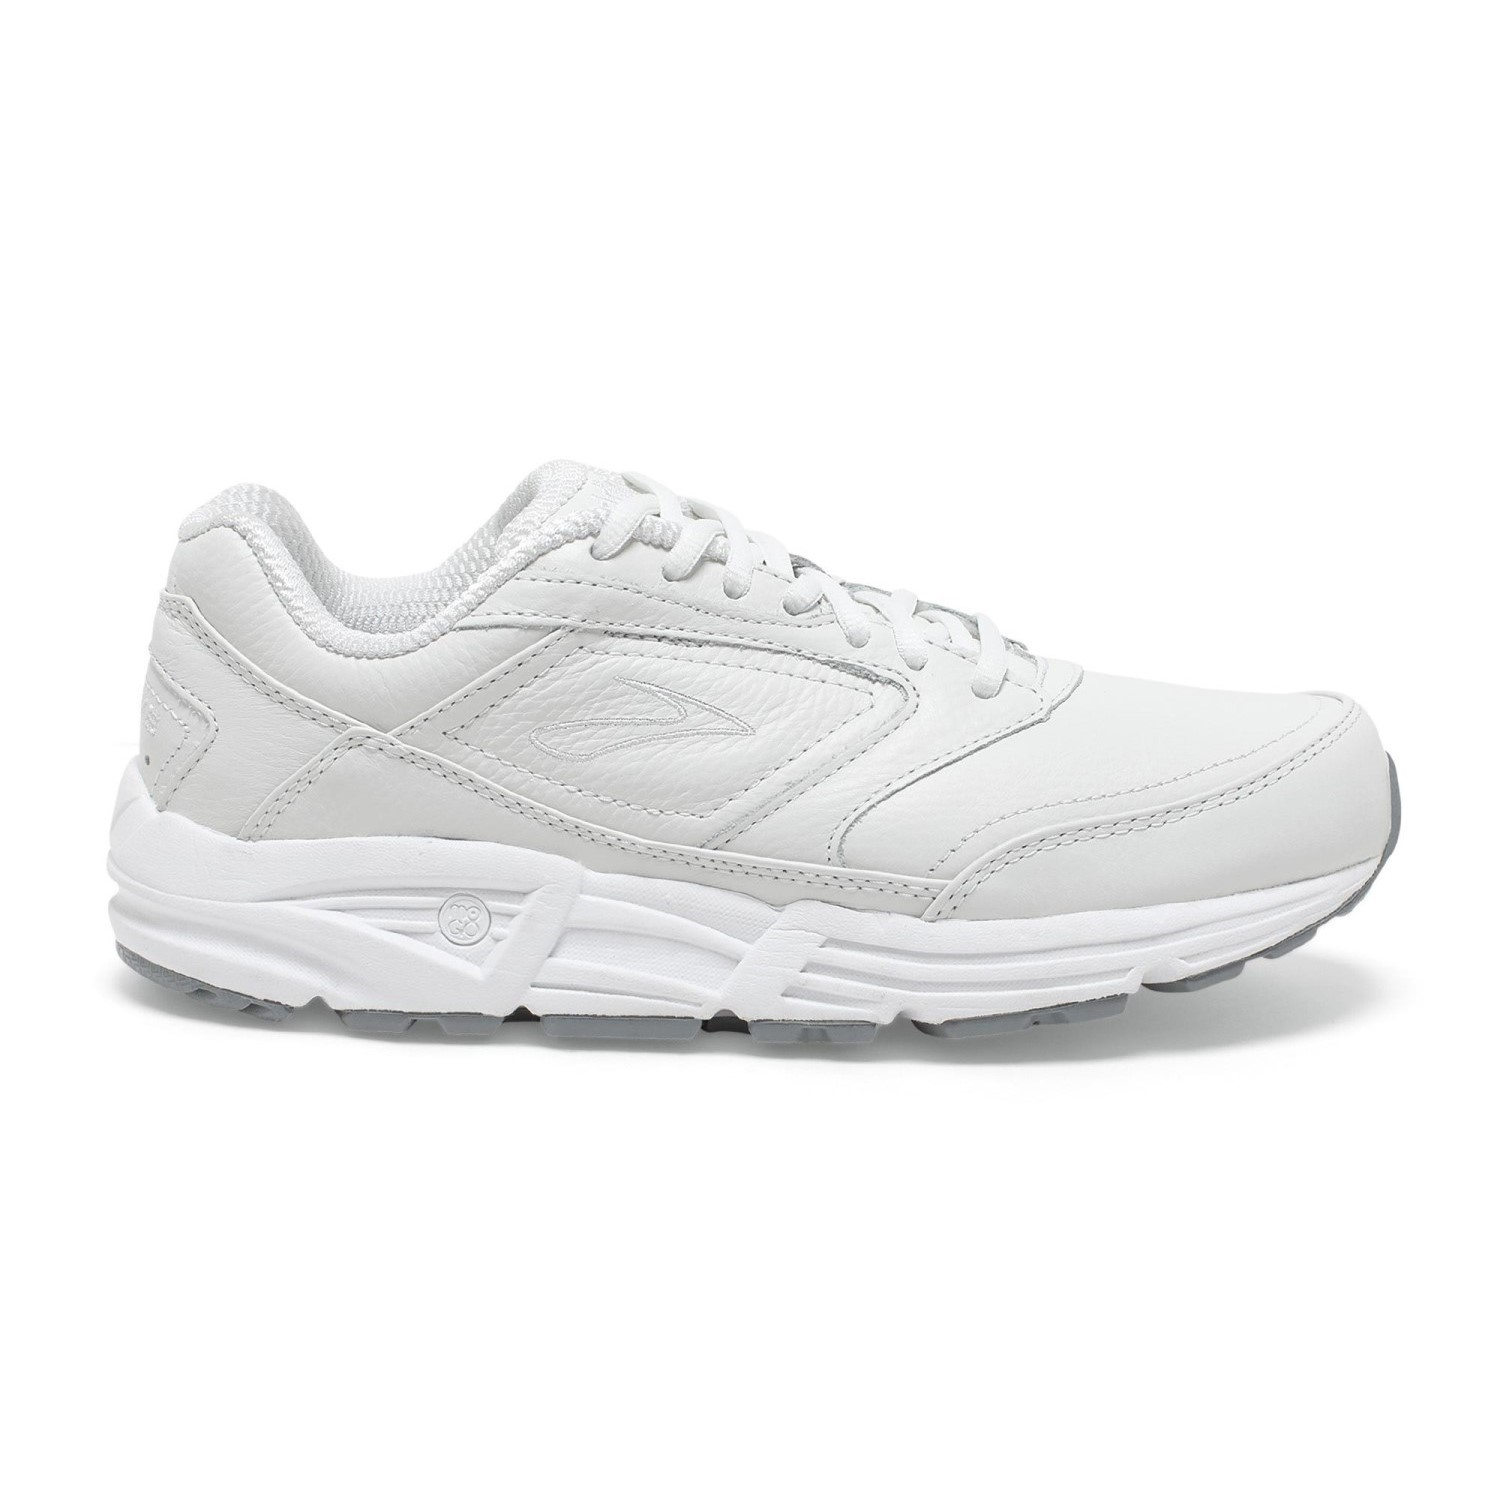 e56b1901989e8 Brooks Addiction Walker - Mens Walking Shoes - White